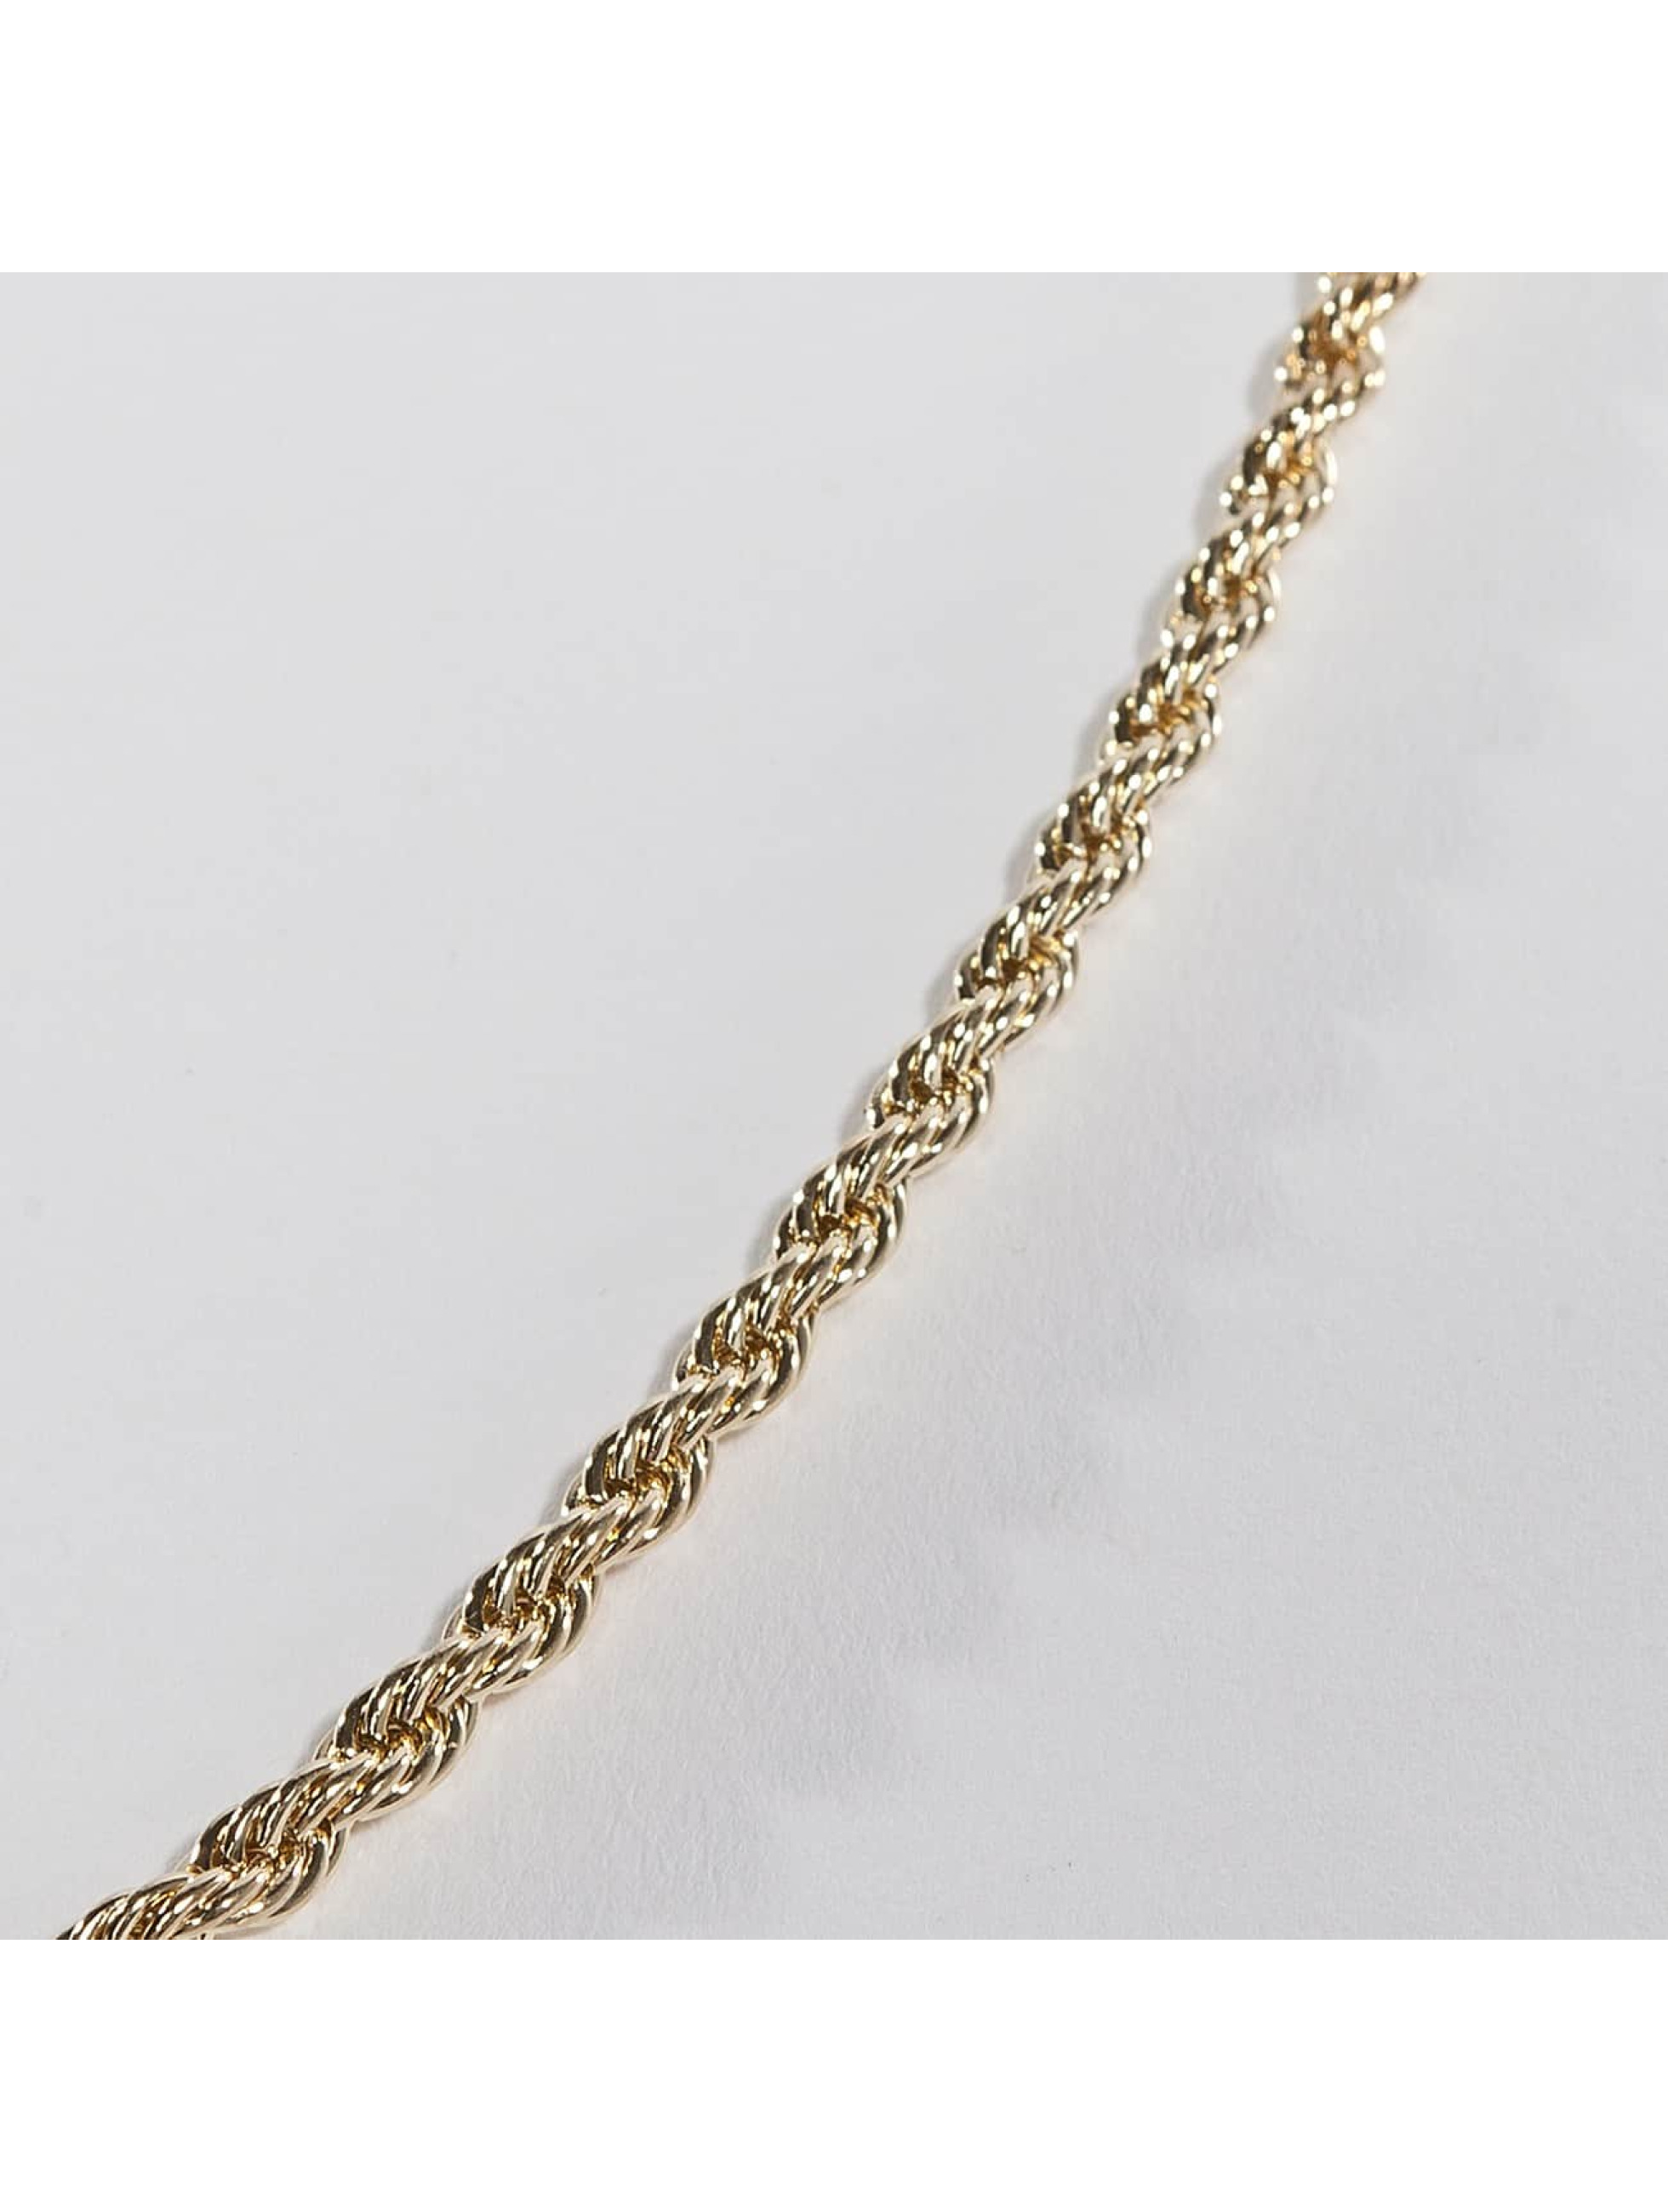 KING ICE Männer,Frauen Kette Gold_Plated 4mm Dookie Rope Chain in goldfarben